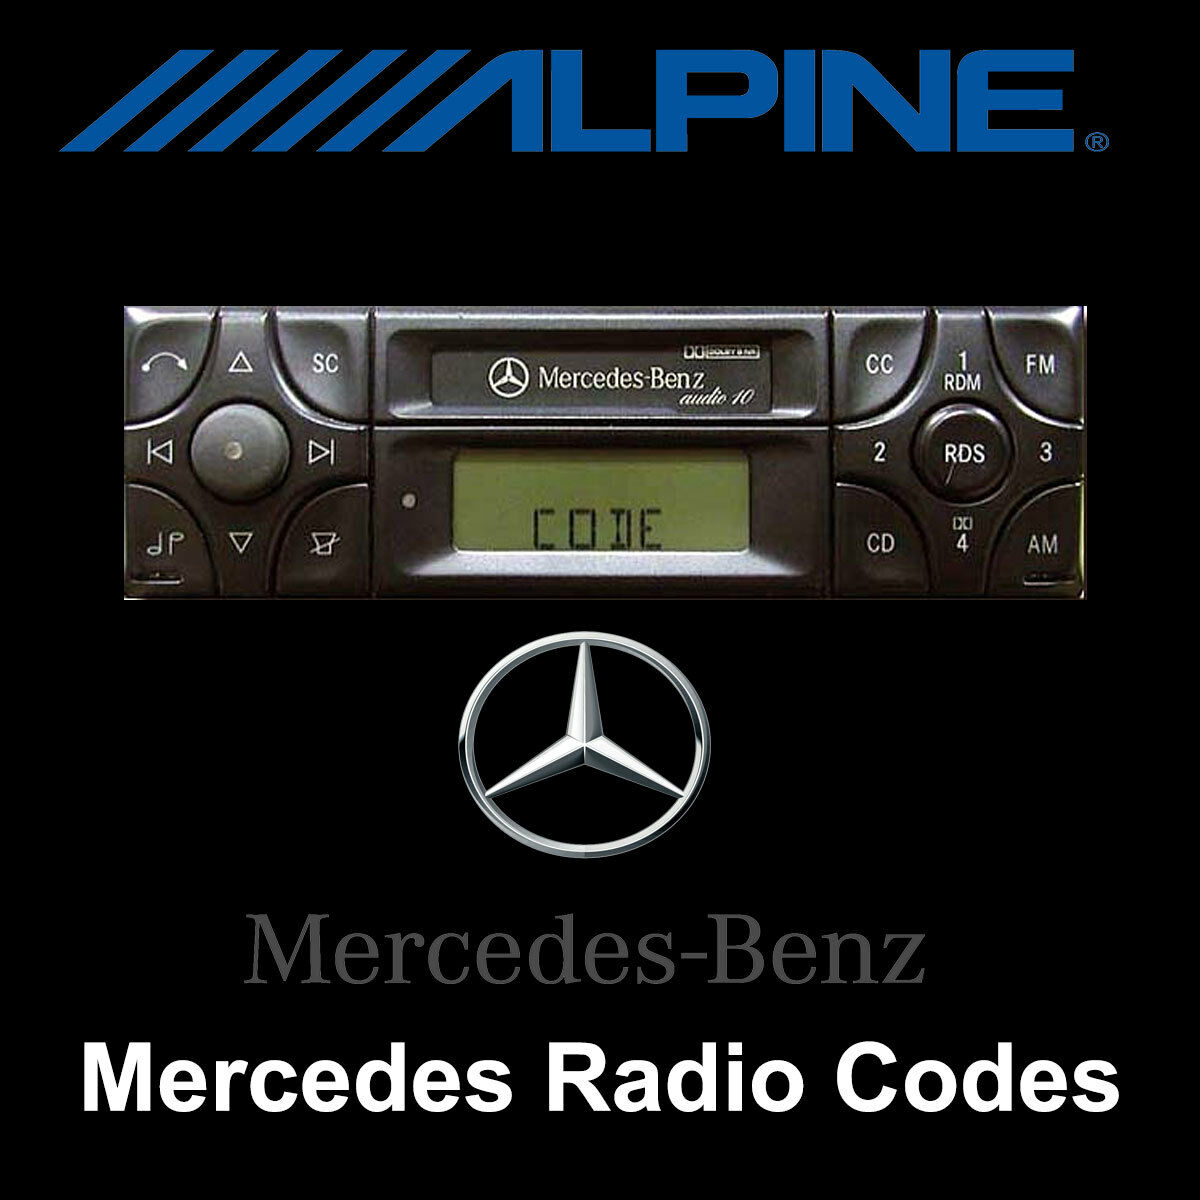 mercedes radio code alpine mf2910 mf2199 audio 10 car. Black Bedroom Furniture Sets. Home Design Ideas